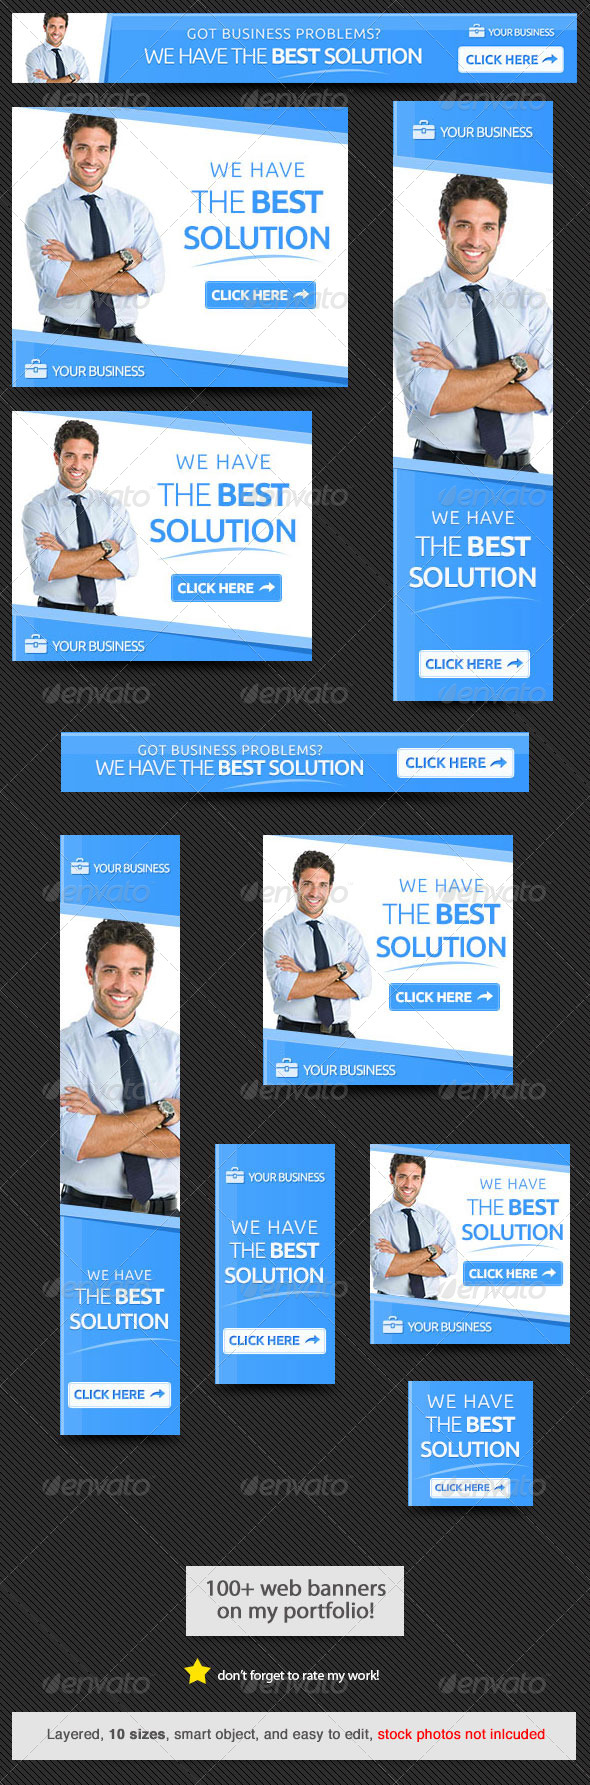 GraphicRiver Business Solution Web Banner 8075025